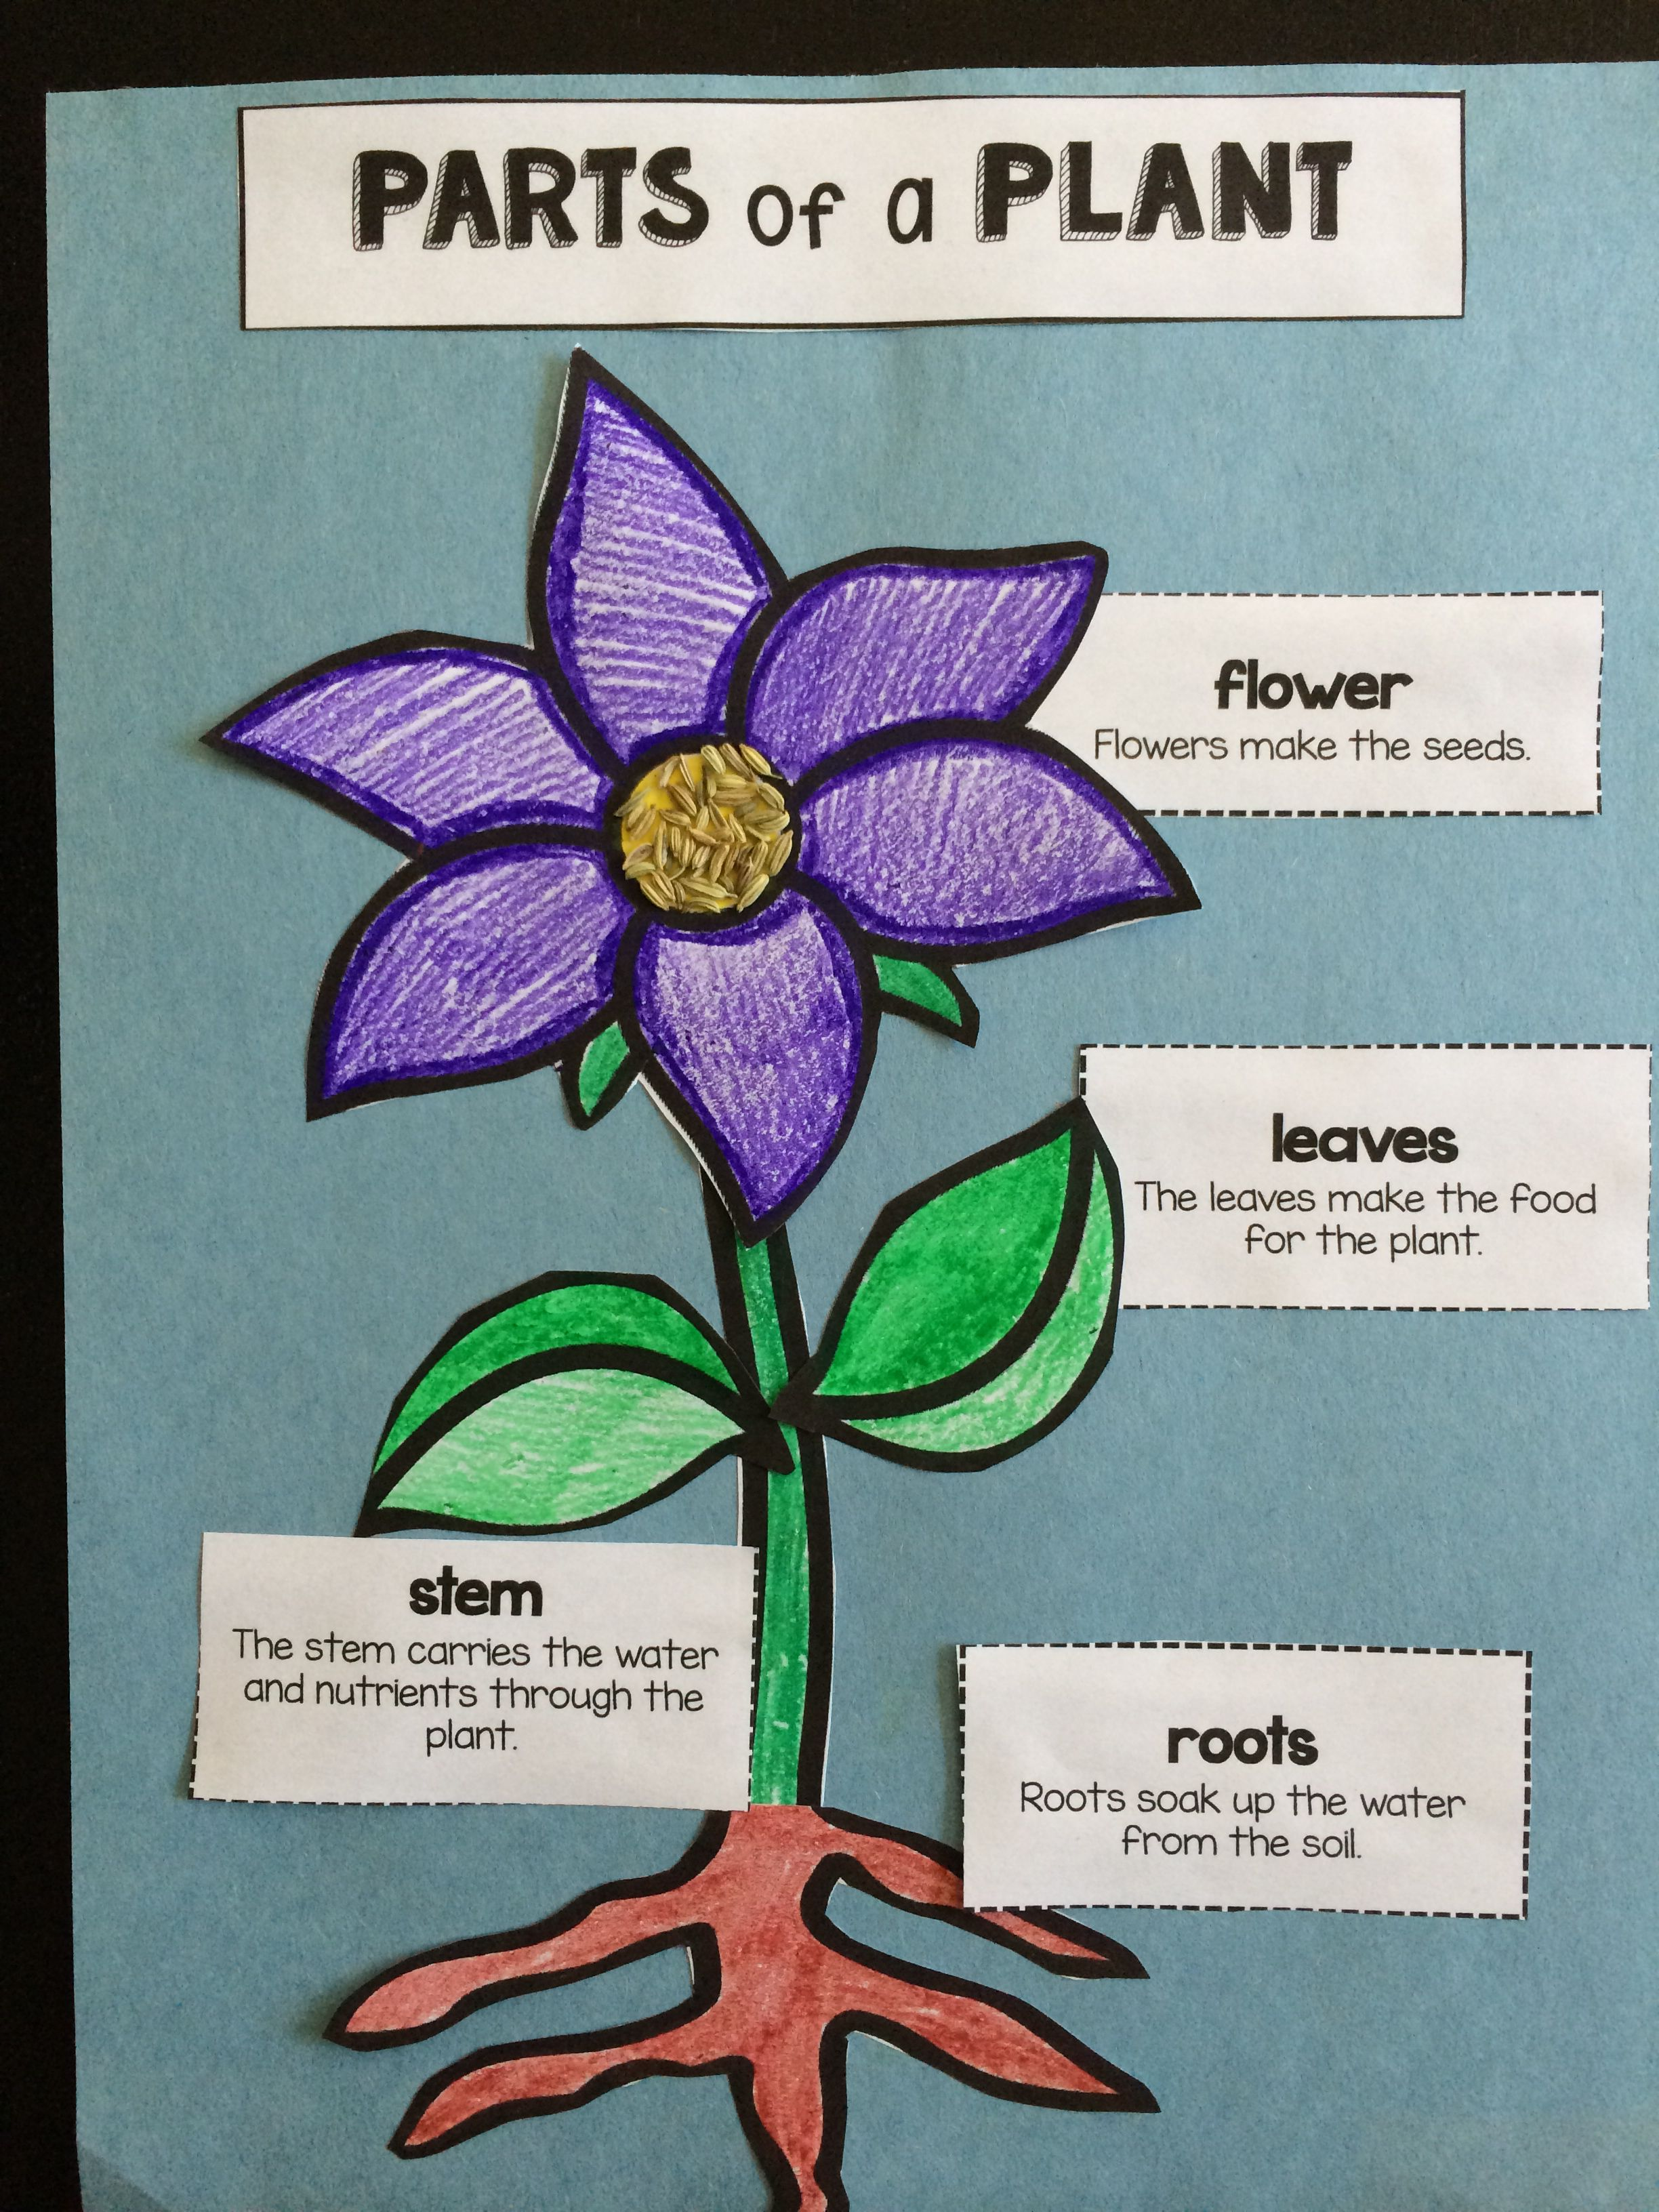 Plants arts and crafts - Parts Of A Plant Labeling Activity And Craft